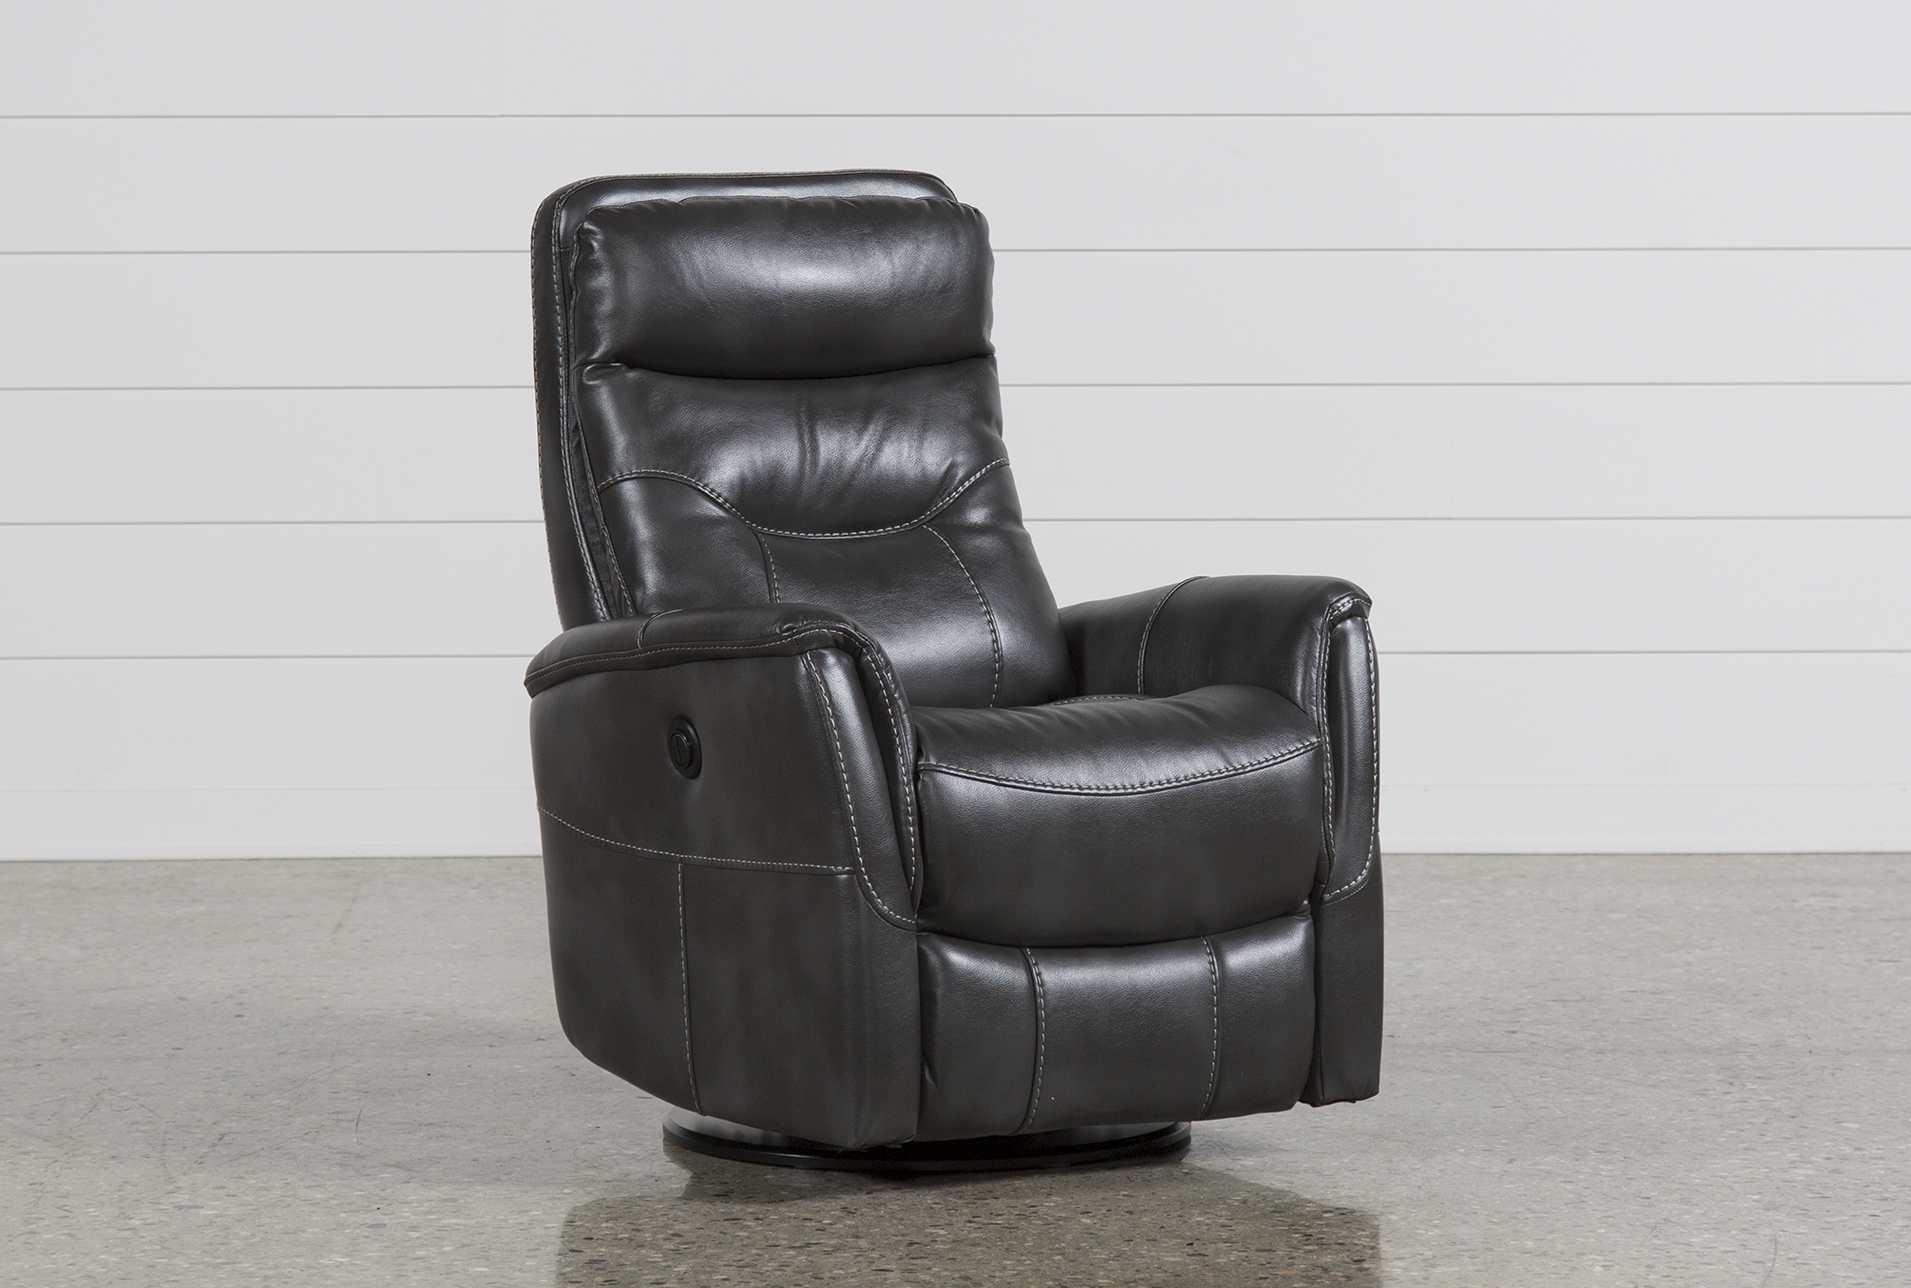 Gannon Flint Power Swivel Glider Recliner W/Built In Battery (Qty: 1) Has  Been Successfully Added To Your Cart.